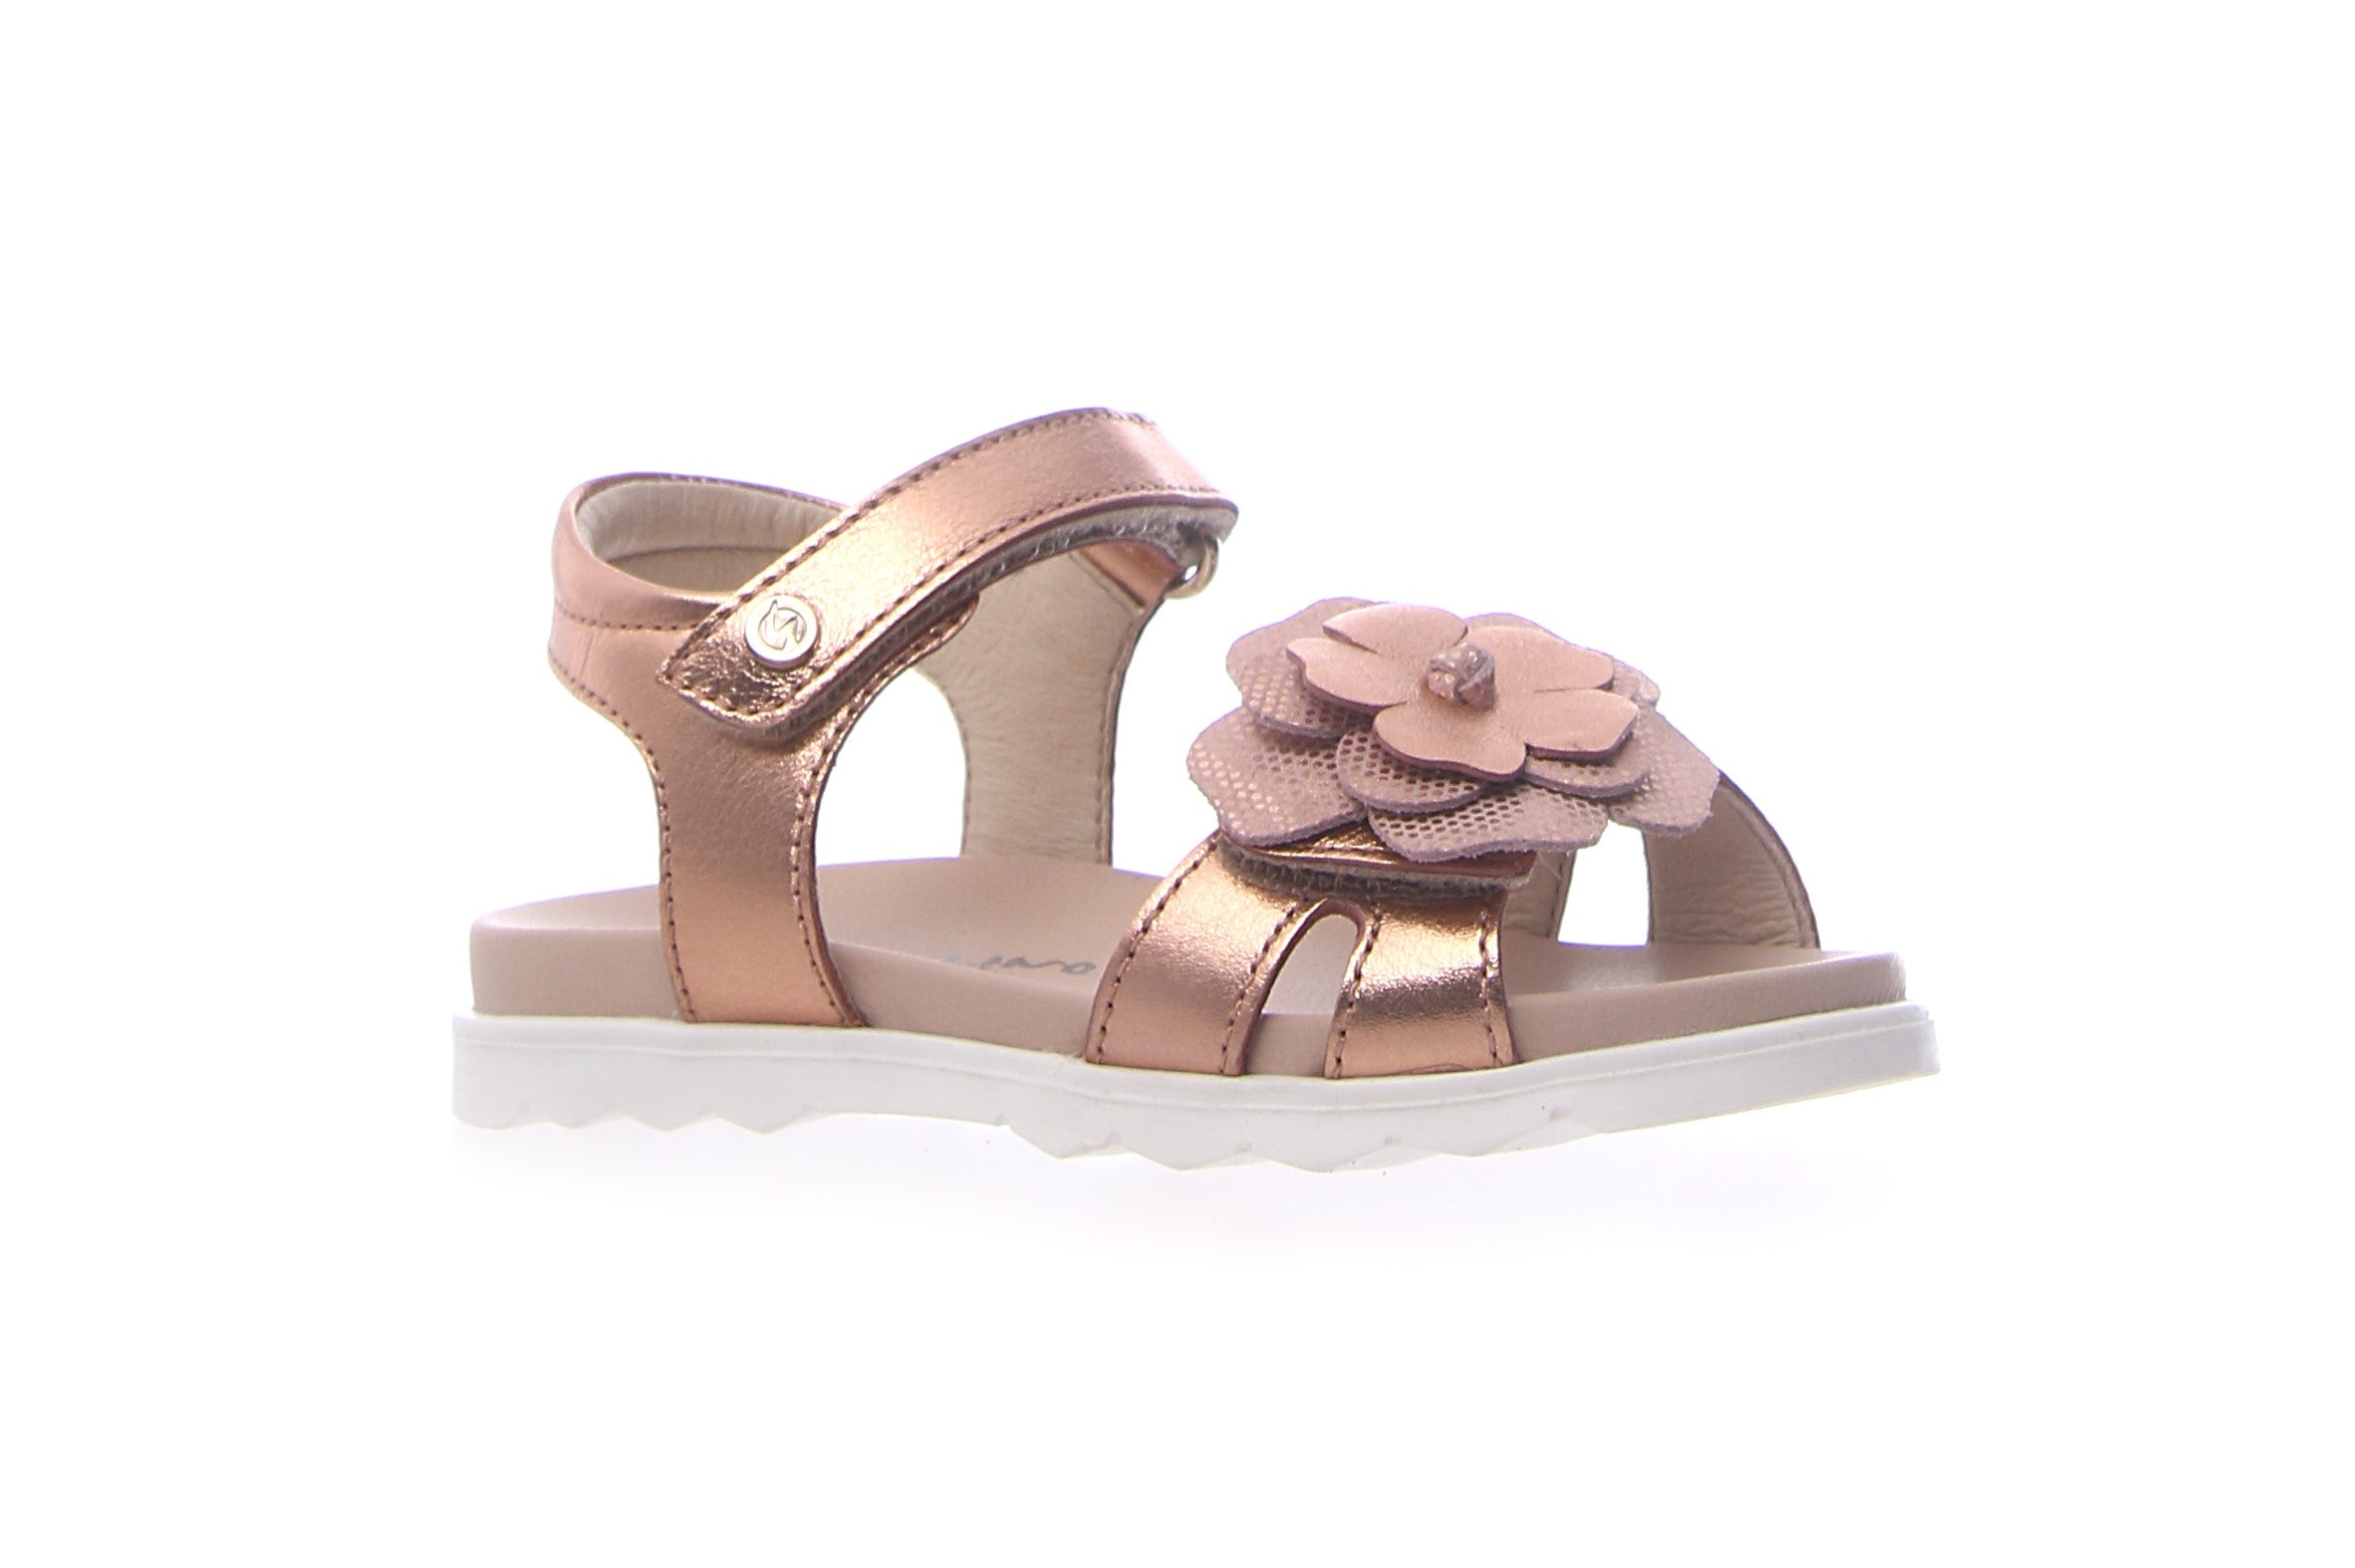 Naturino Rose Gold Sandal with Flower